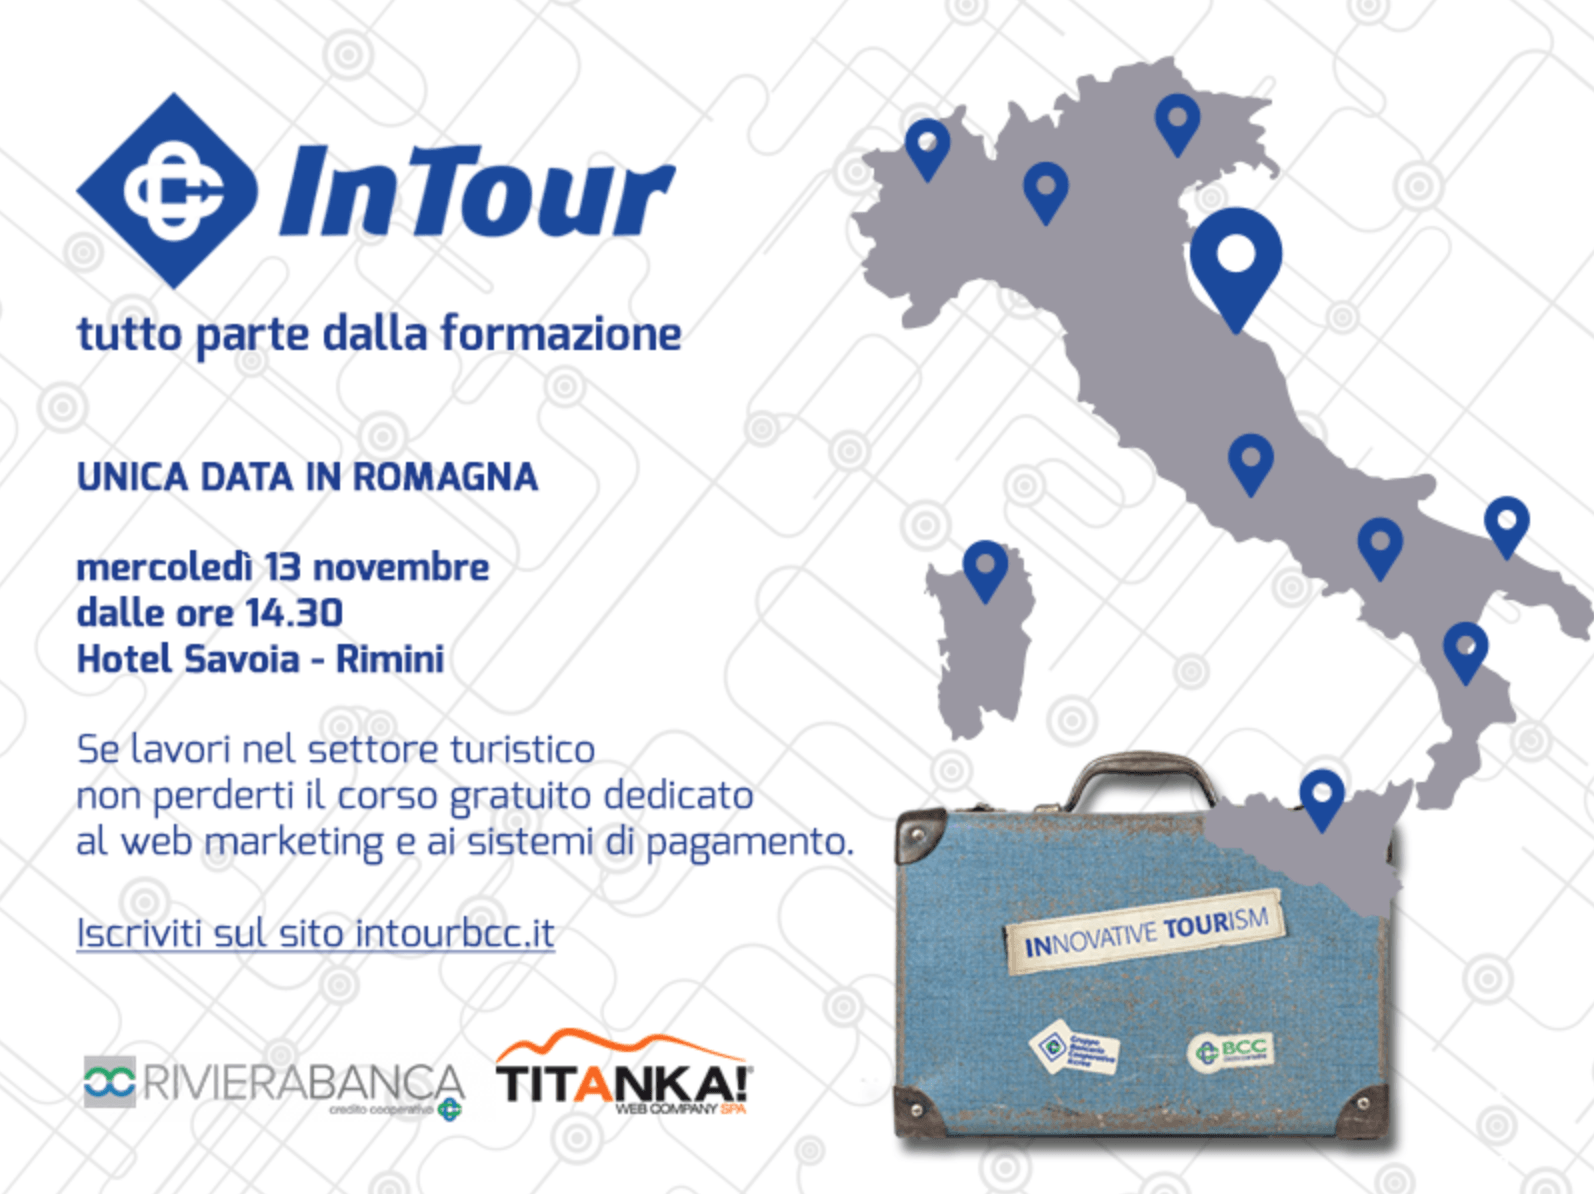 InTour Innovative Tourism